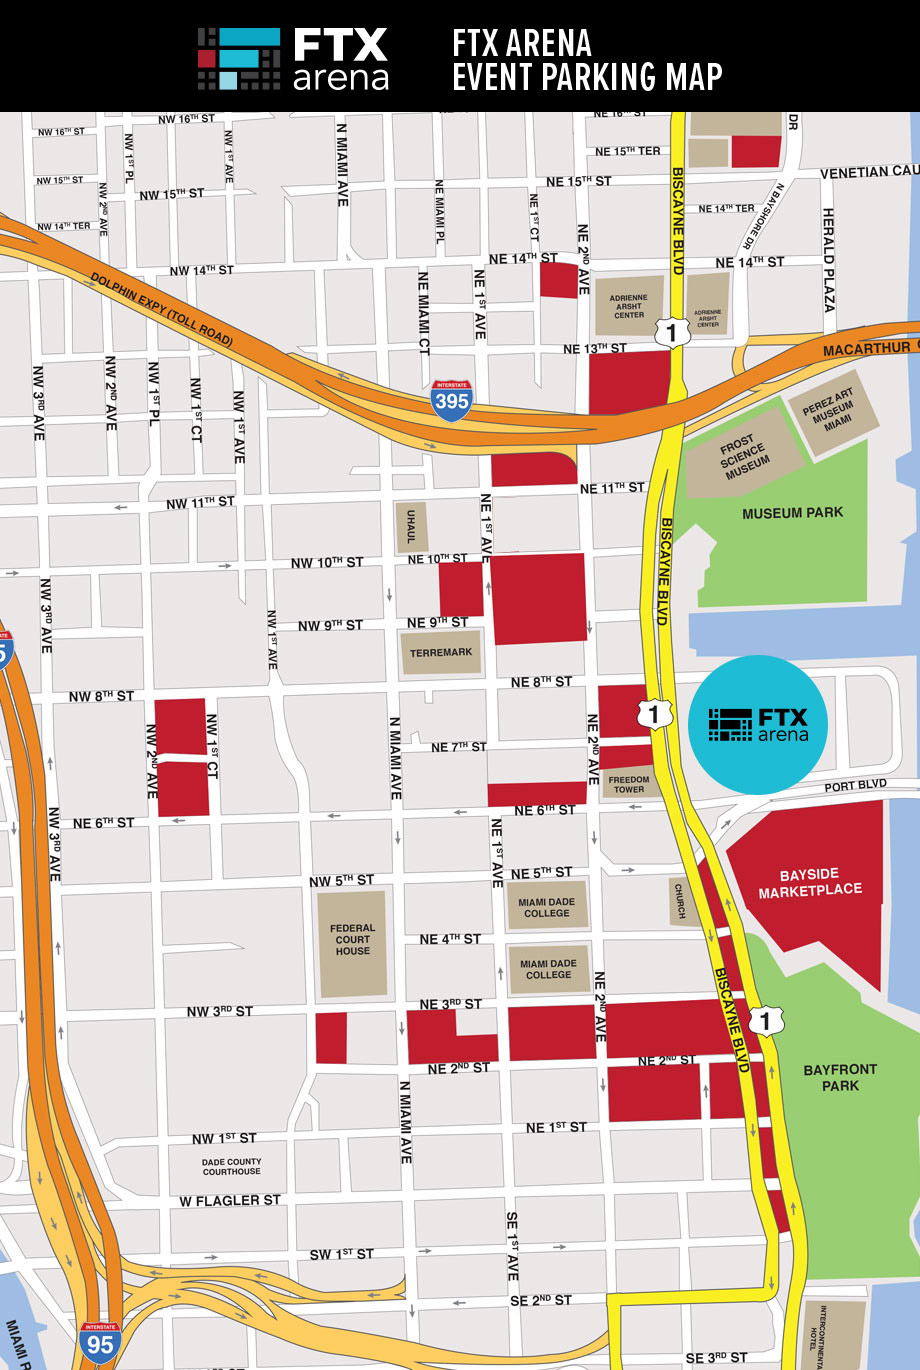 FTX Arena Parking Lot Map